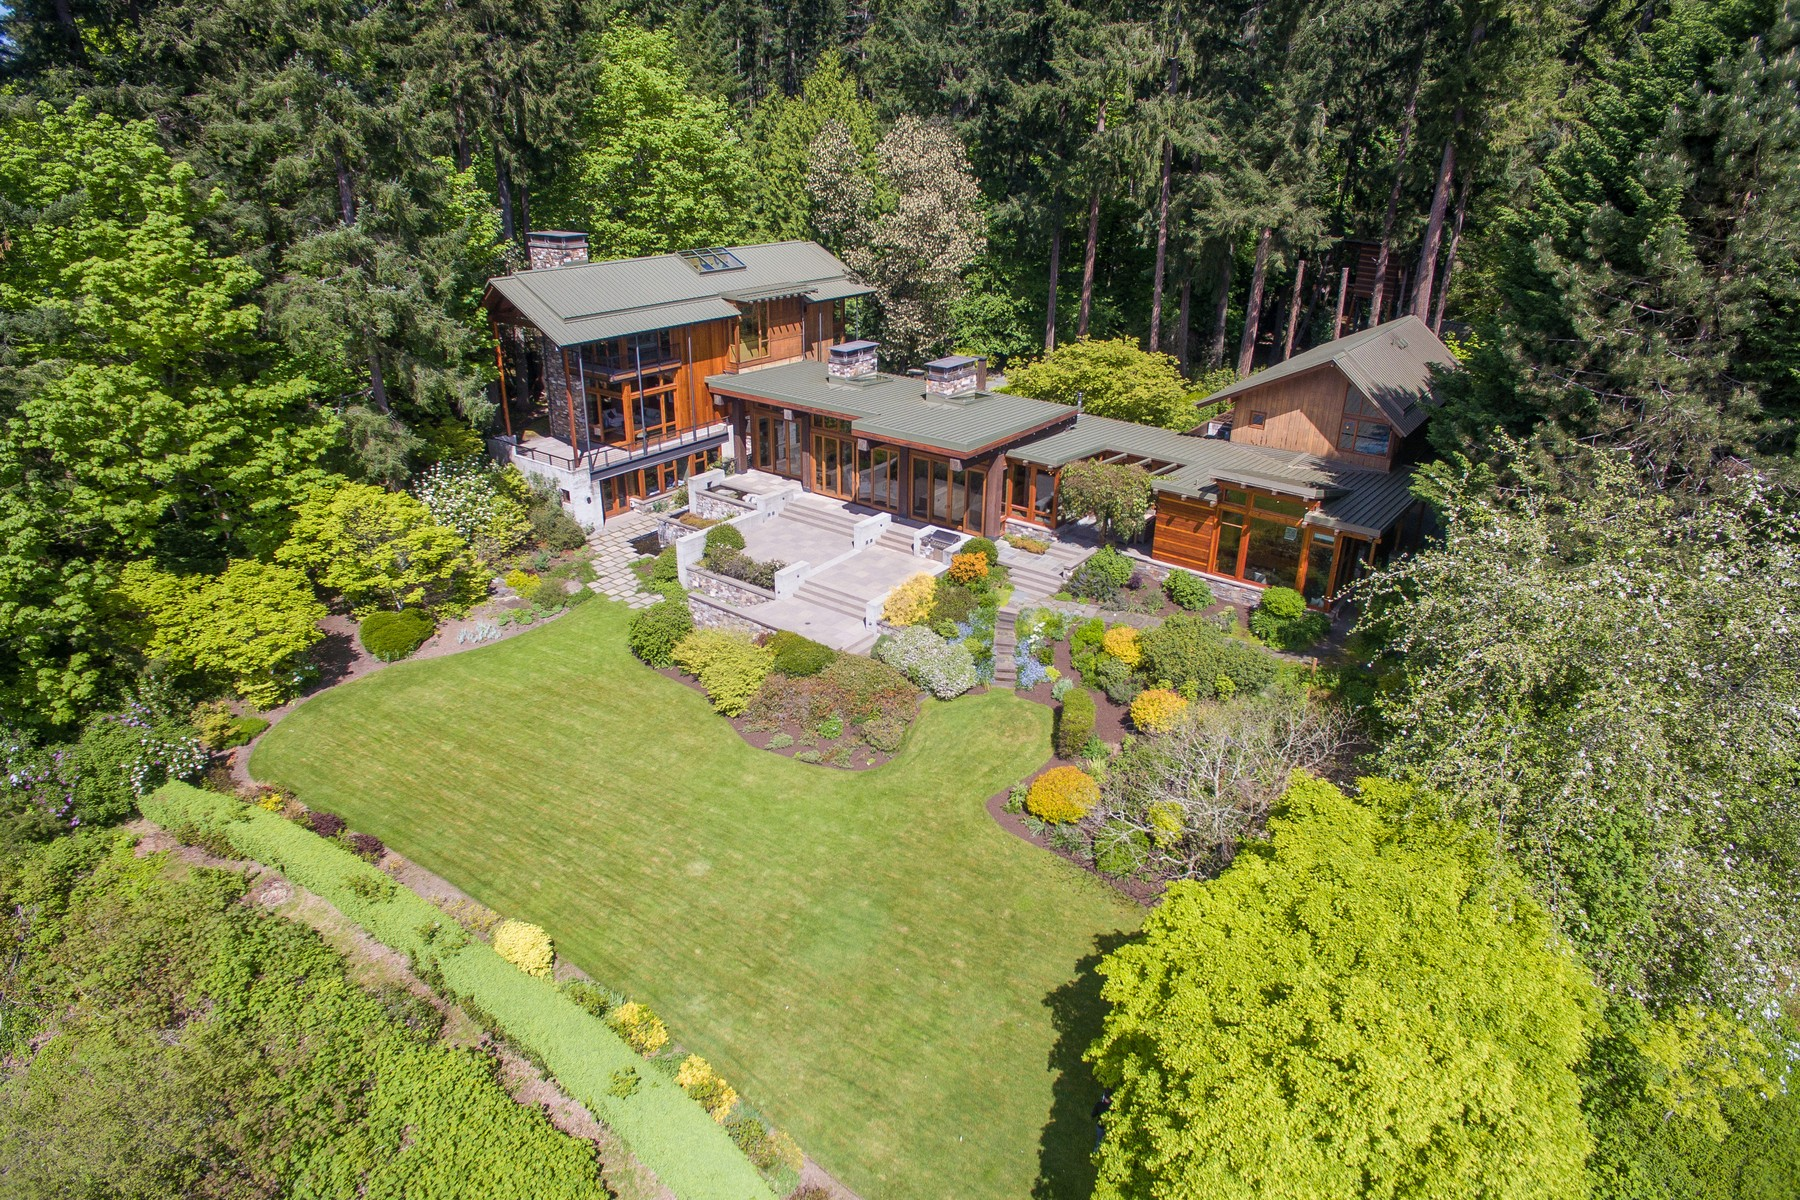 Casa para uma família para Venda às Picturesque waterfront estate RES5/3 Undisclosed Bainbridge Island, Washington 98110 Estados Unidos